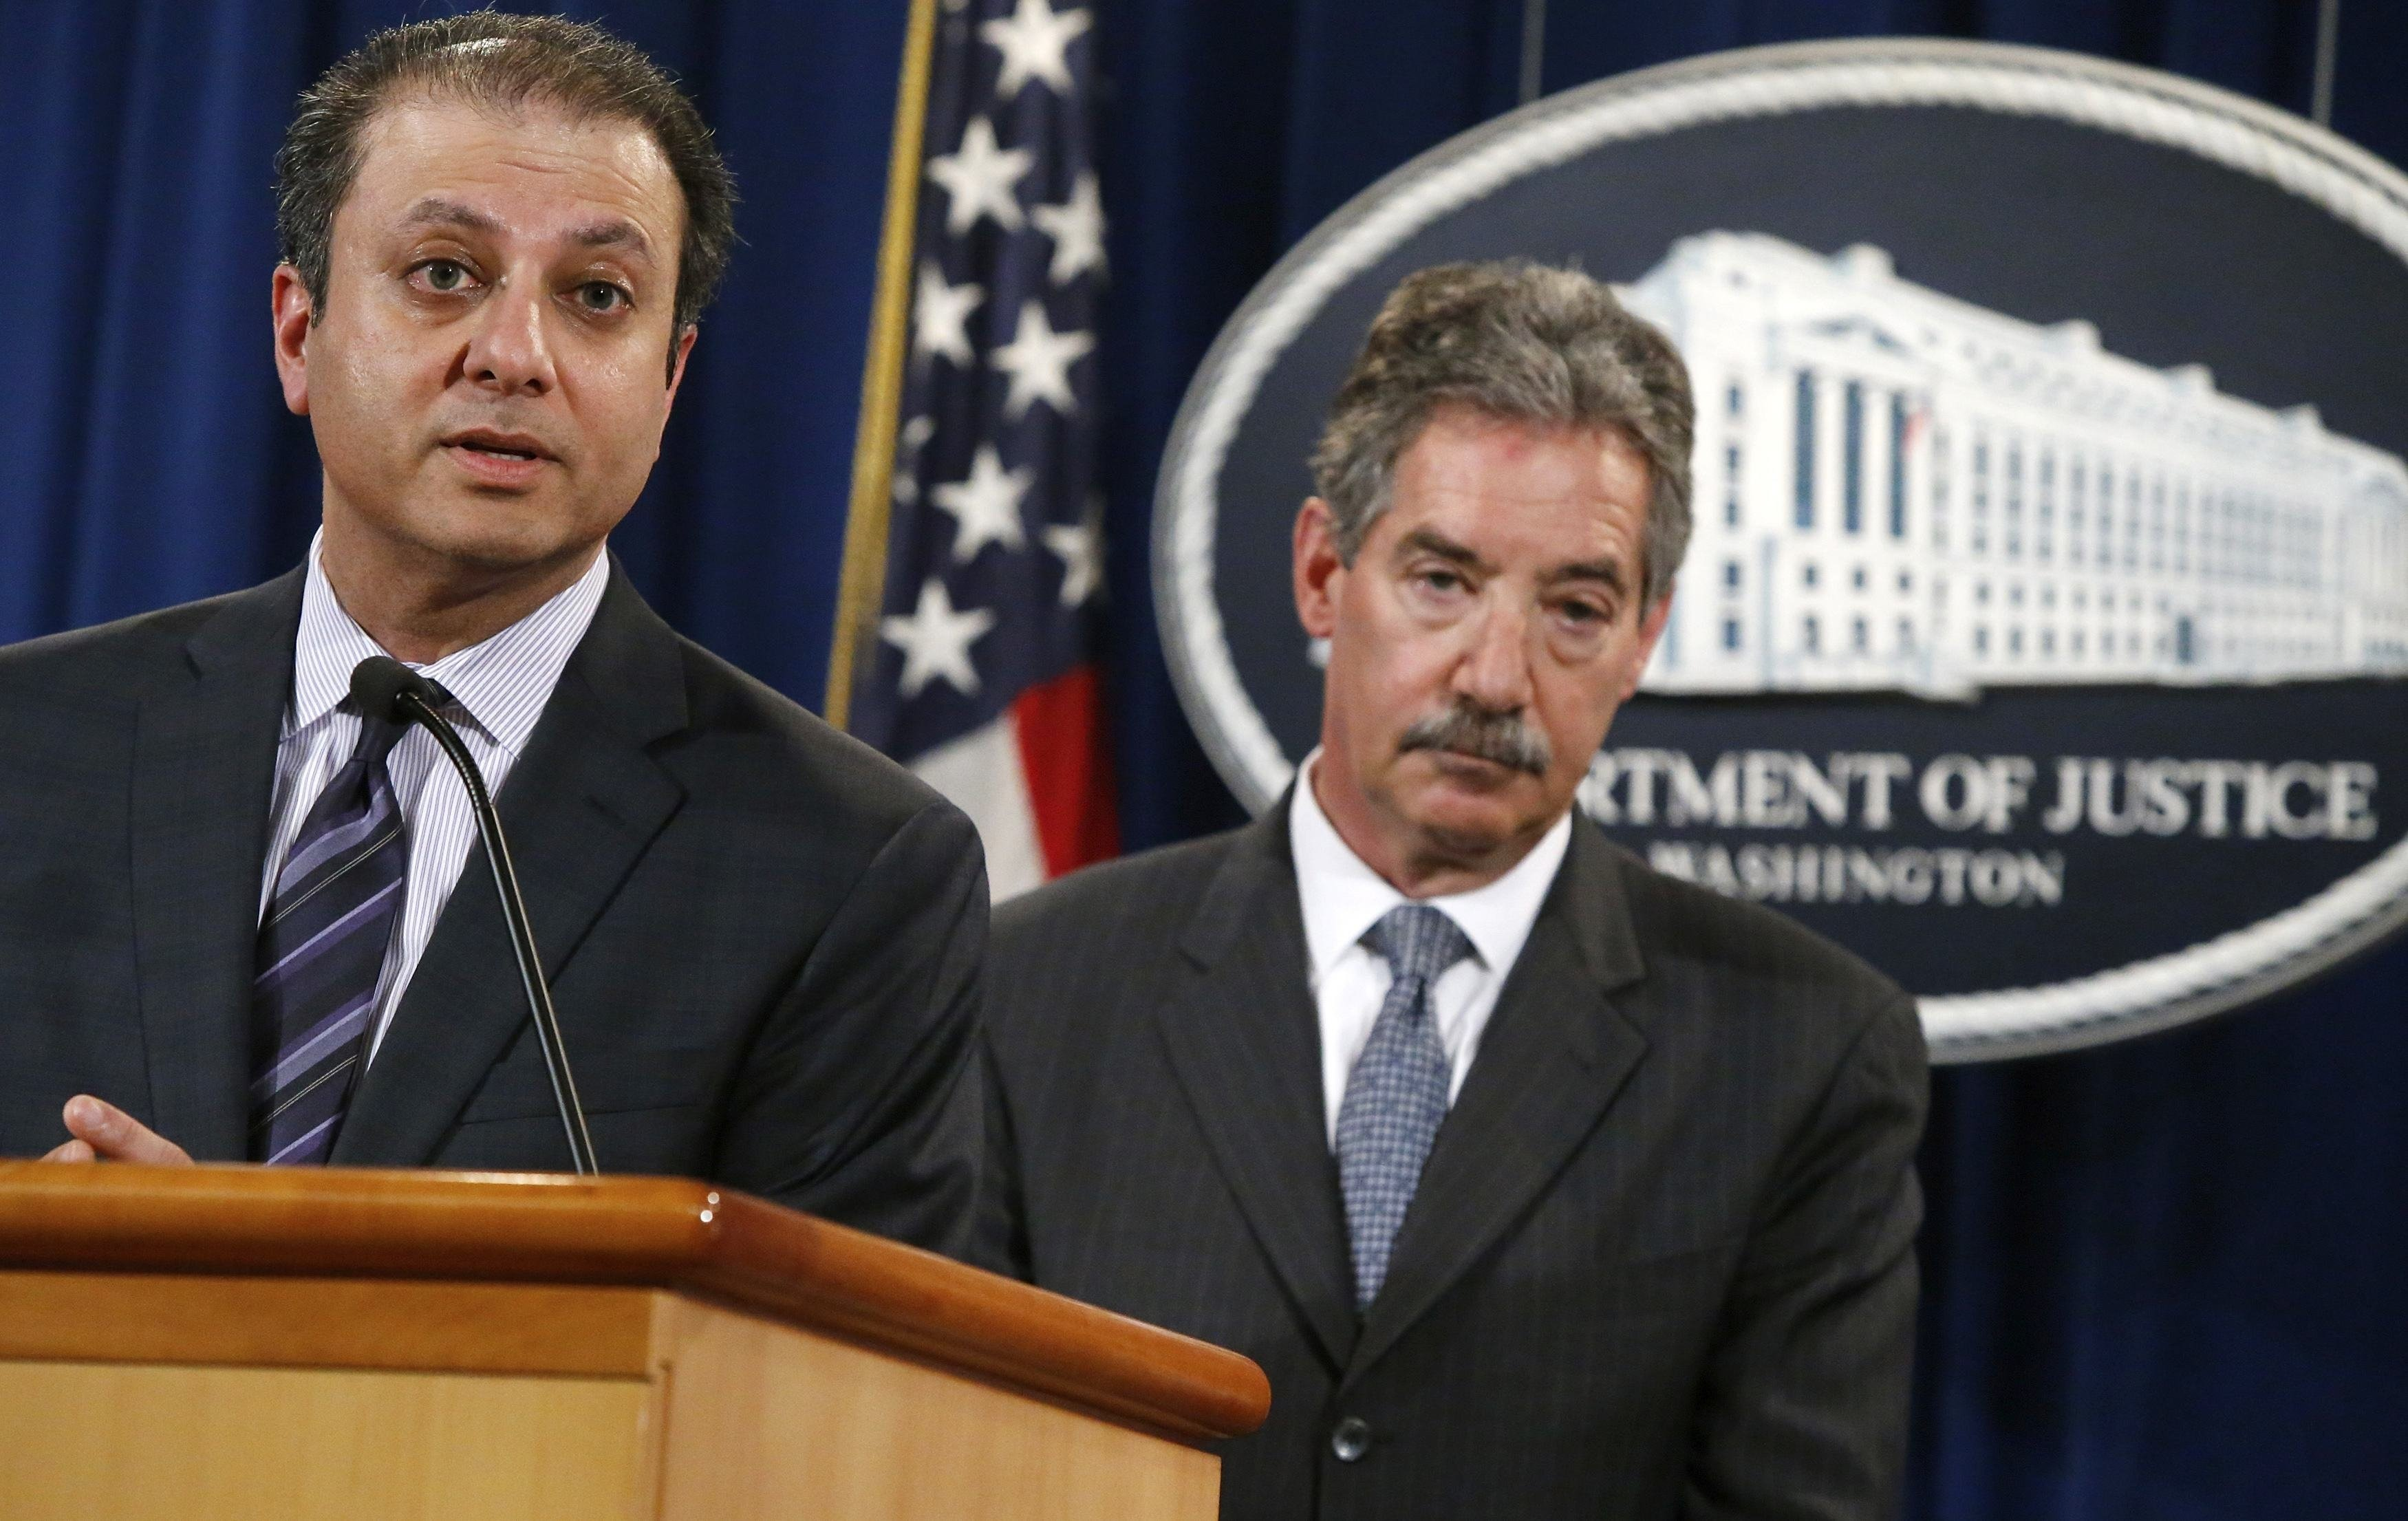 U.S. Attorney for the Southern District of New York Preet Bharara speaks while flanked by U.S. Deputy Attorney General James Cole as they announce a settlement with Anadarko Petroleum Corp at the Justice Department in Washington, April 3, 2014.